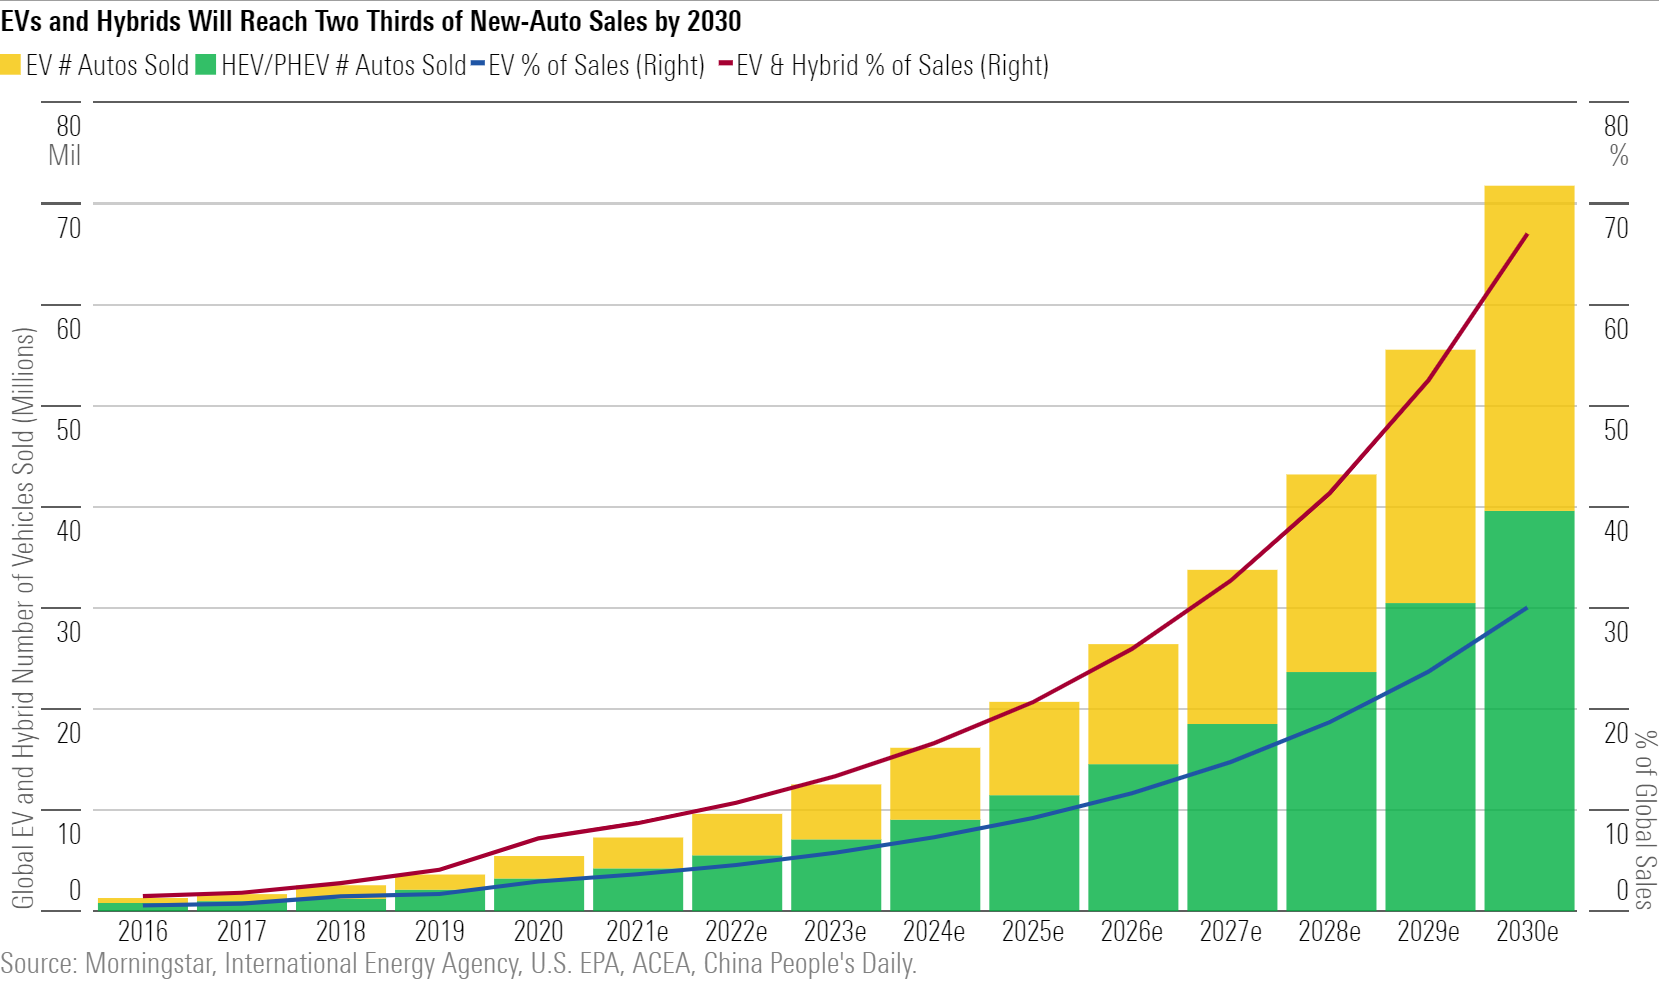 EVs and Hybrid Will Reach Two Thirds of New-Auto Sales by 2030